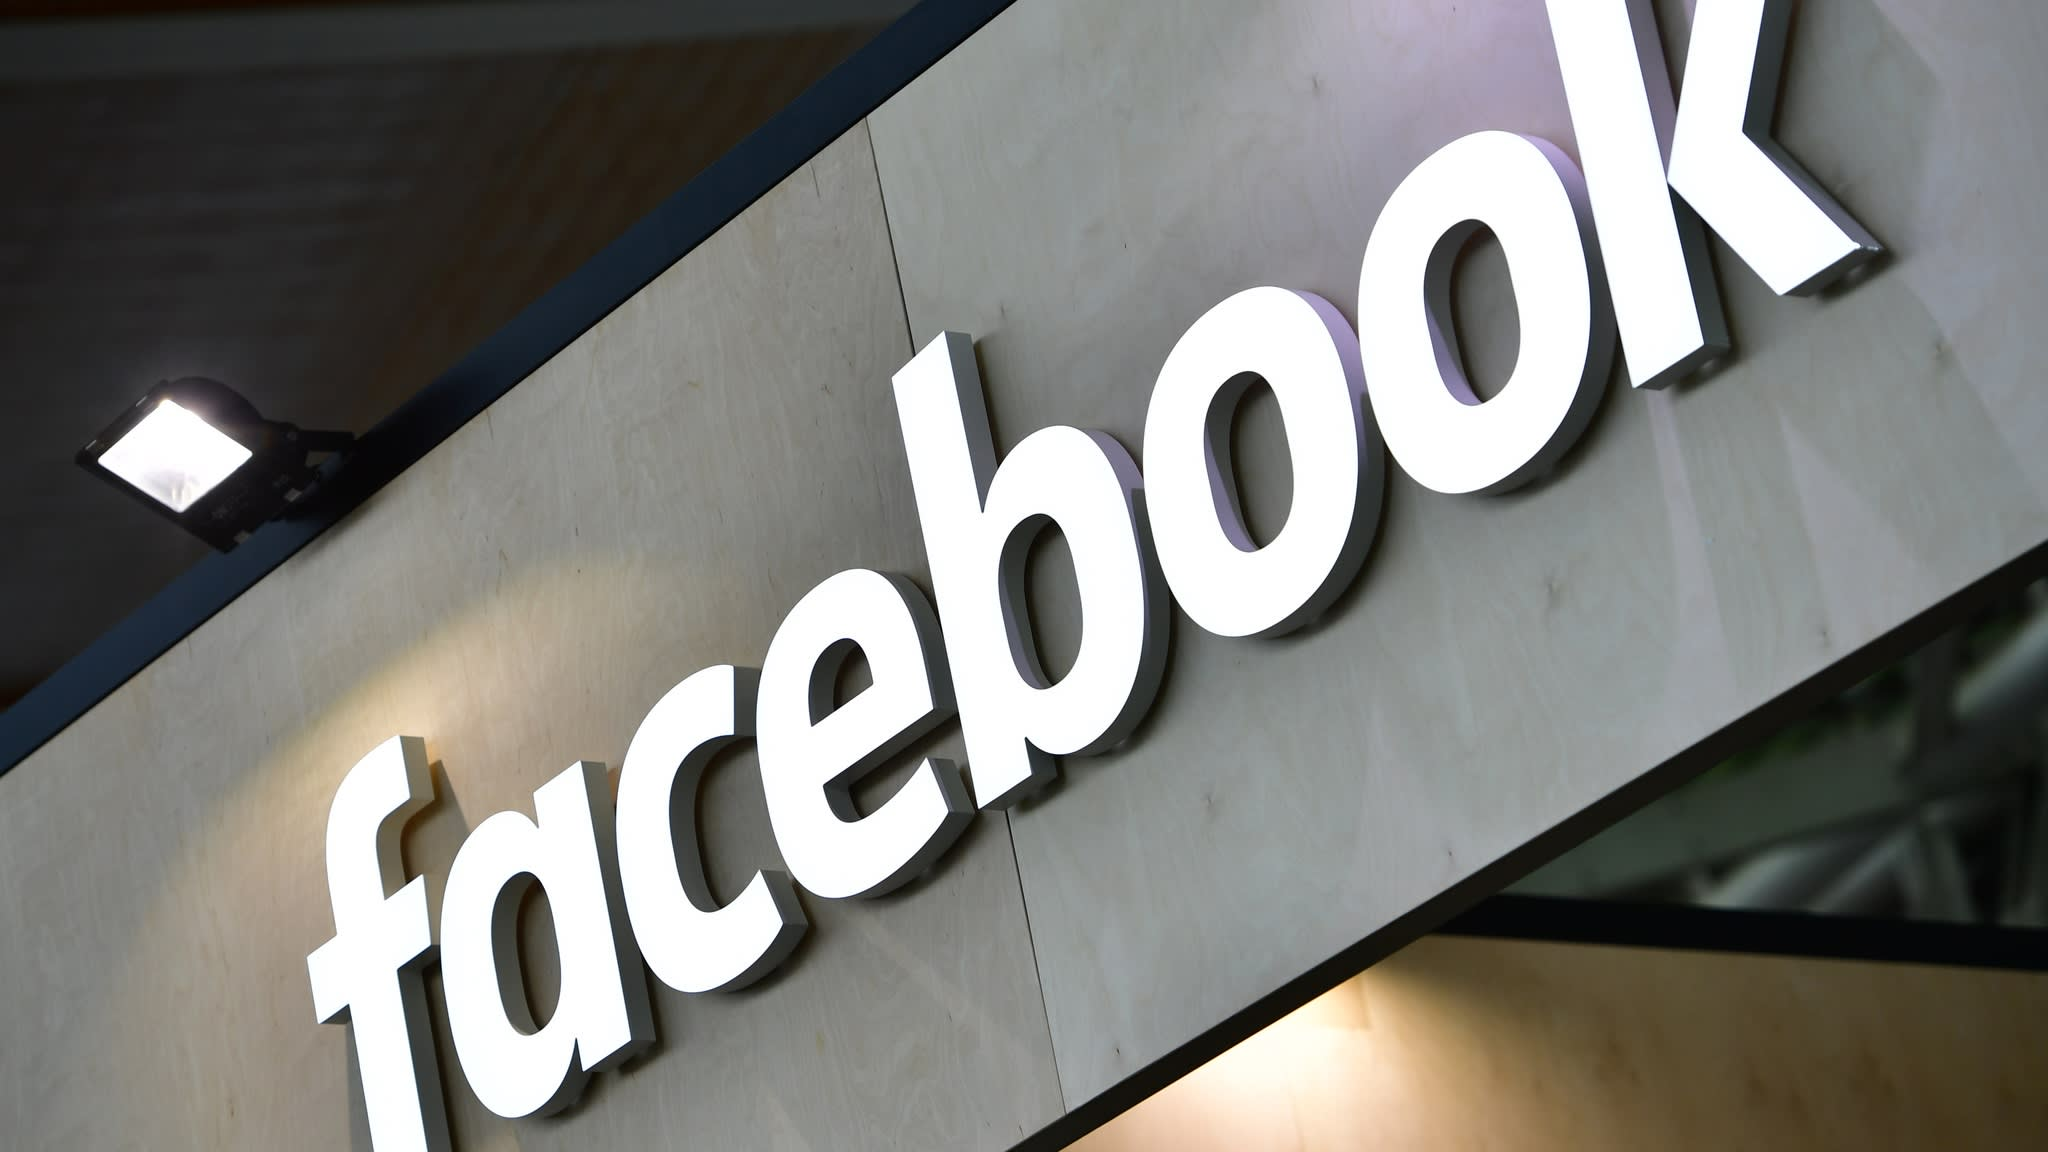 Facebook tumbles after disappointing results